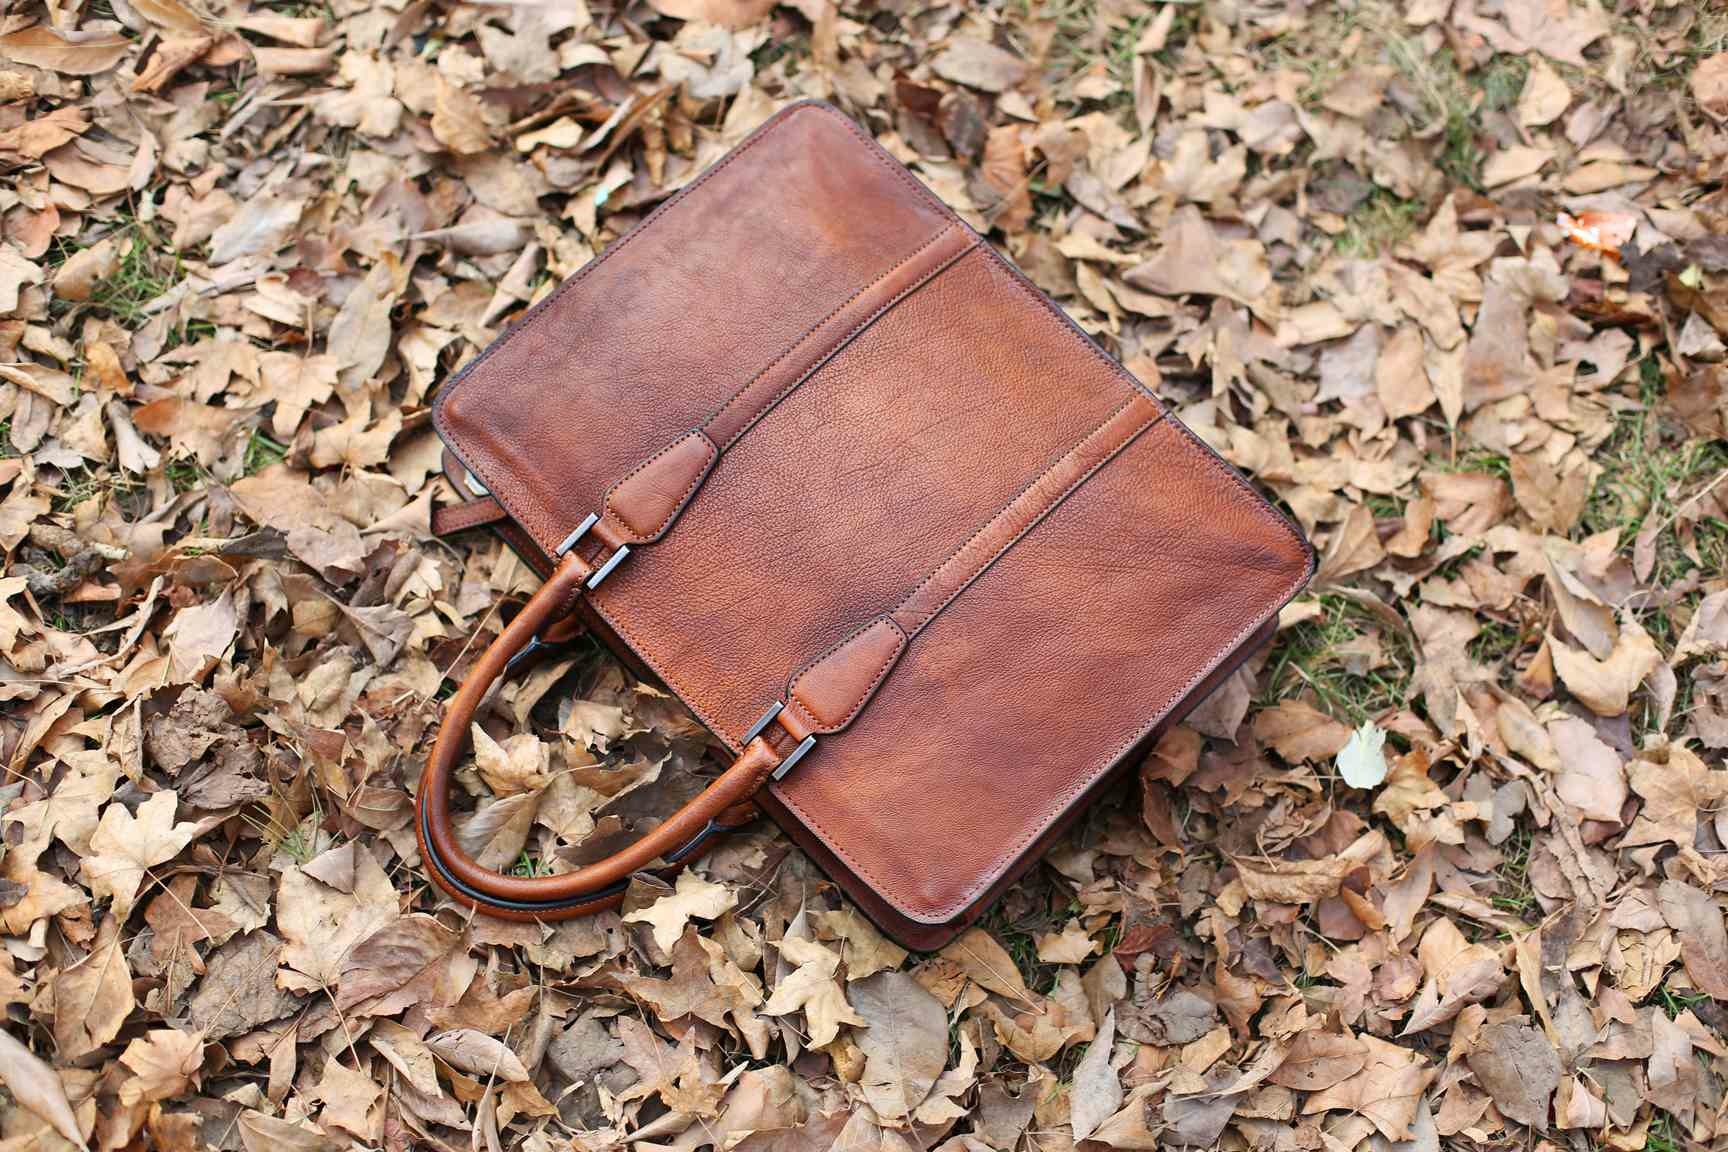 Handmade Vintage Full Grain Leather Briefcase Laptop Bag